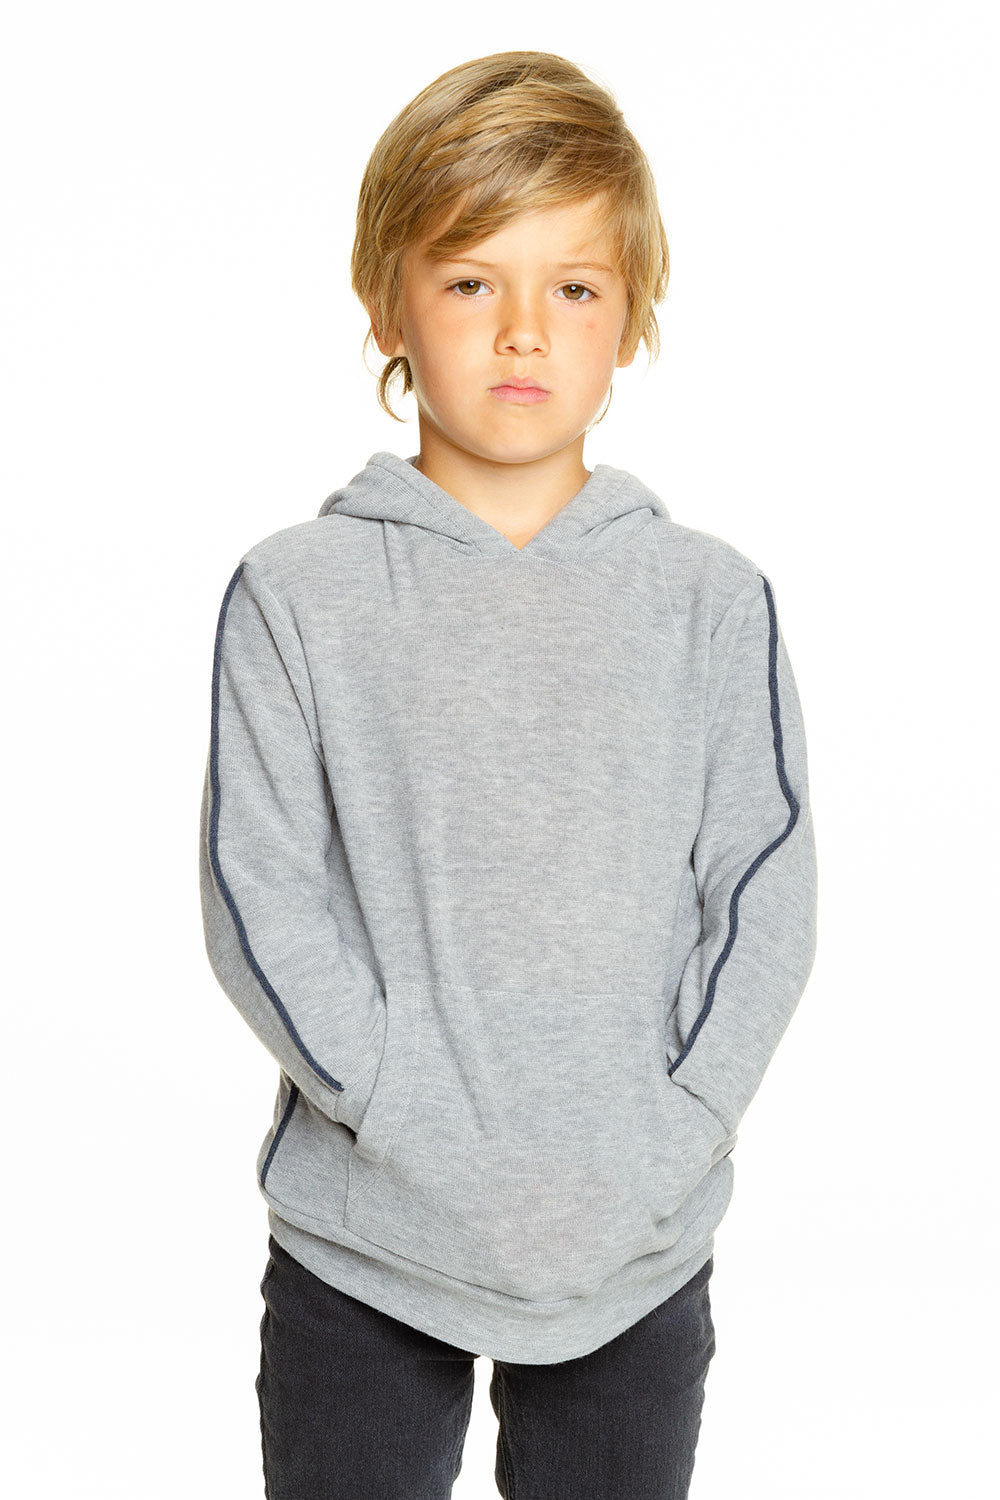 Boys Cozy Knit Contrast Piping Kanga Pocket Pullover Hoodie BOYS chaserbrand4.myshopify.com